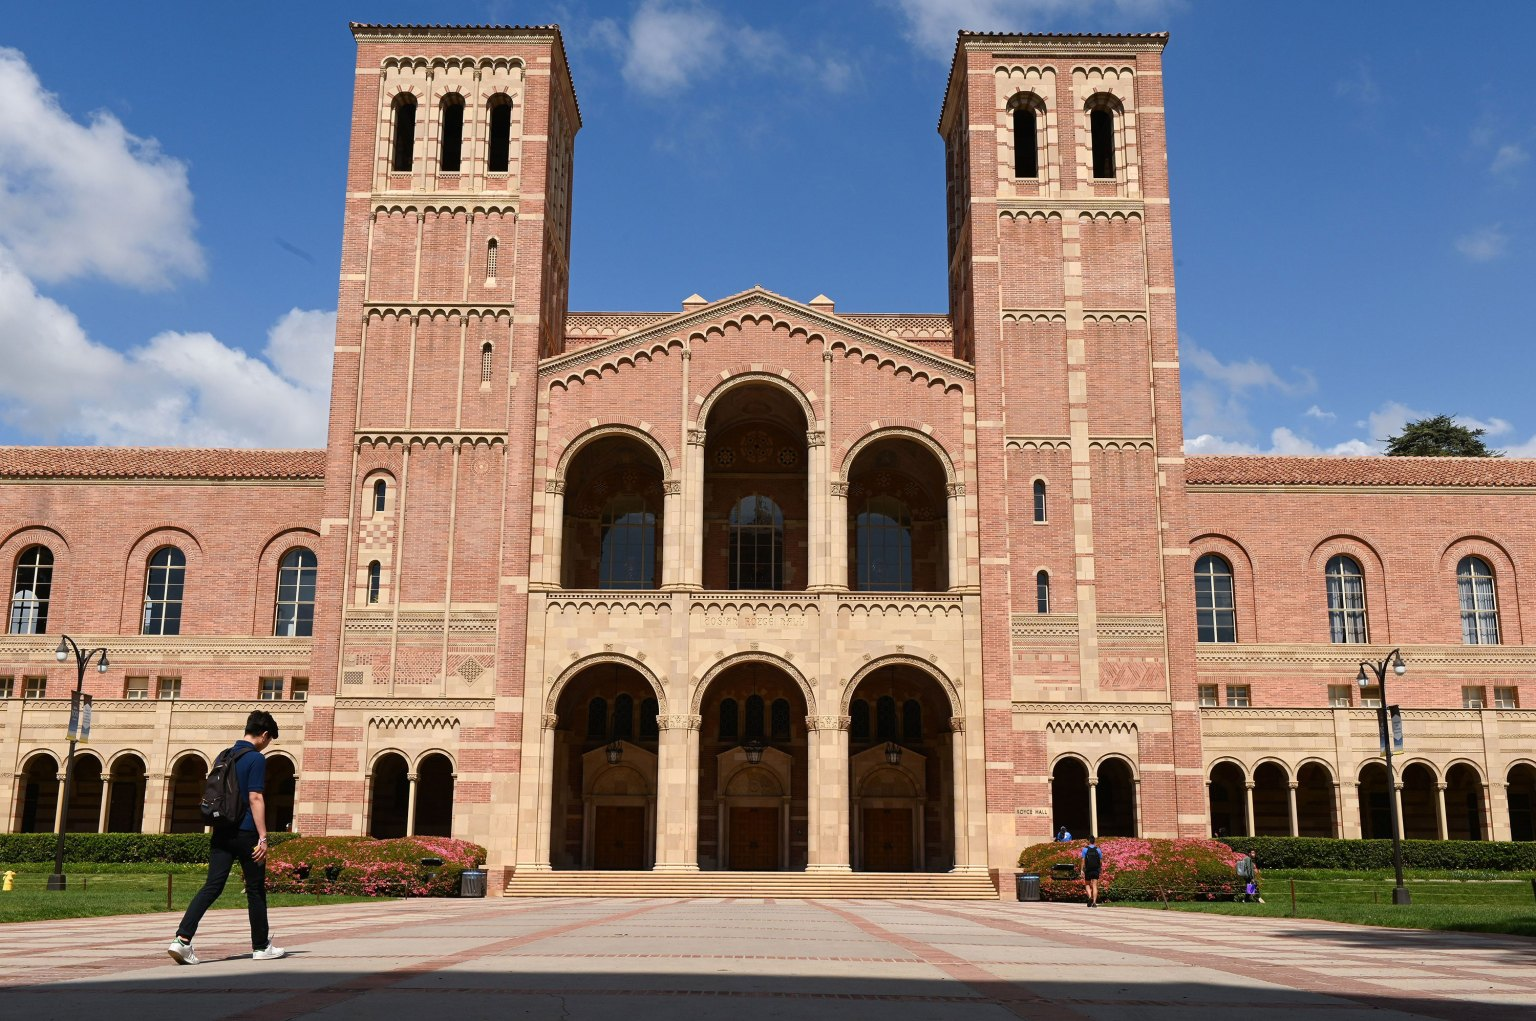 State Auditor: 4 UC Schools Including UCLA Didn't Prevent Improper Admissions